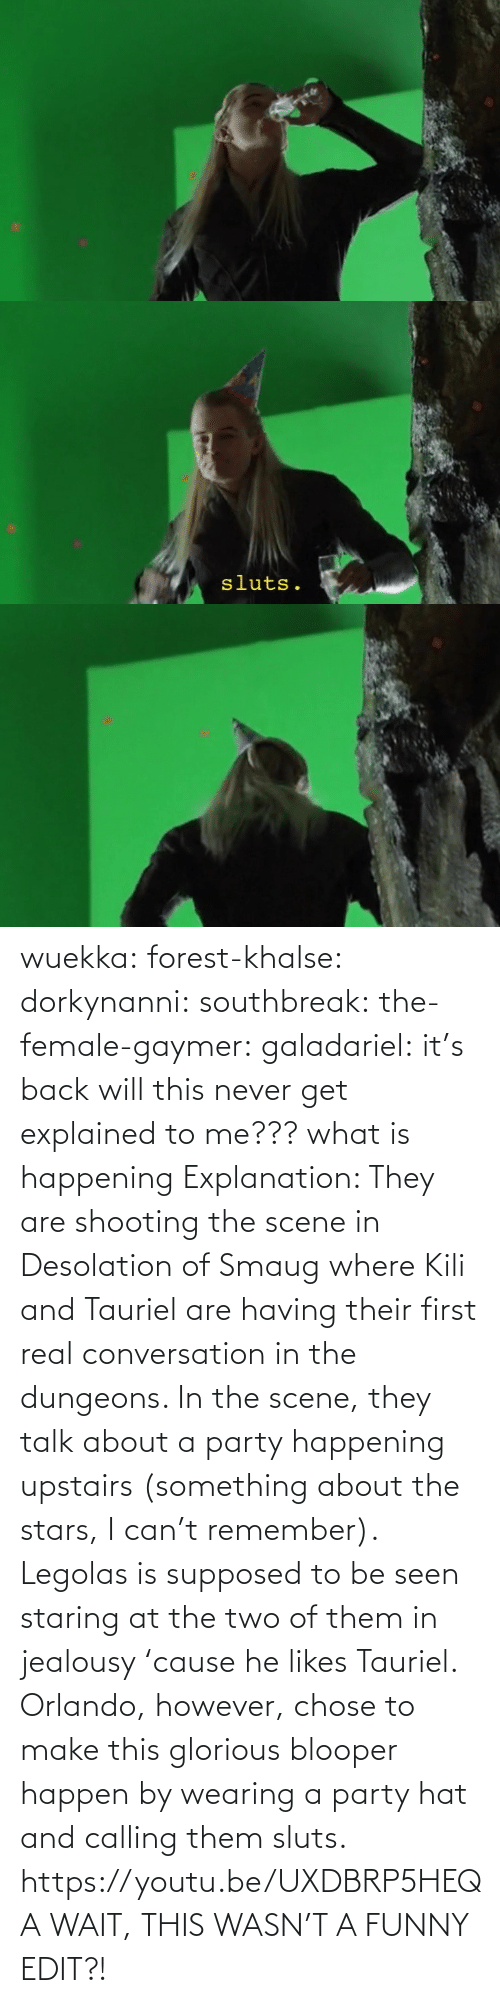 Having: wuekka: forest-khalse:   dorkynanni:  southbreak:   the-female-gaymer:   galadariel:  it's back   will this never get explained to me???    what is happening    Explanation:  They are shooting the scene in Desolation of Smaug where Kili and Tauriel are having their first real conversation in the dungeons.  In the scene, they talk about a party happening upstairs (something about the stars, I can't remember). Legolas is supposed to be seen staring at the two of them in jealousy 'cause he likes Tauriel.  Orlando, however, chose to make this glorious blooper happen by wearing a party hat and calling them sluts.    https://youtu.be/UXDBRP5HEQA    WAIT, THIS WASN'T A FUNNY EDIT?!